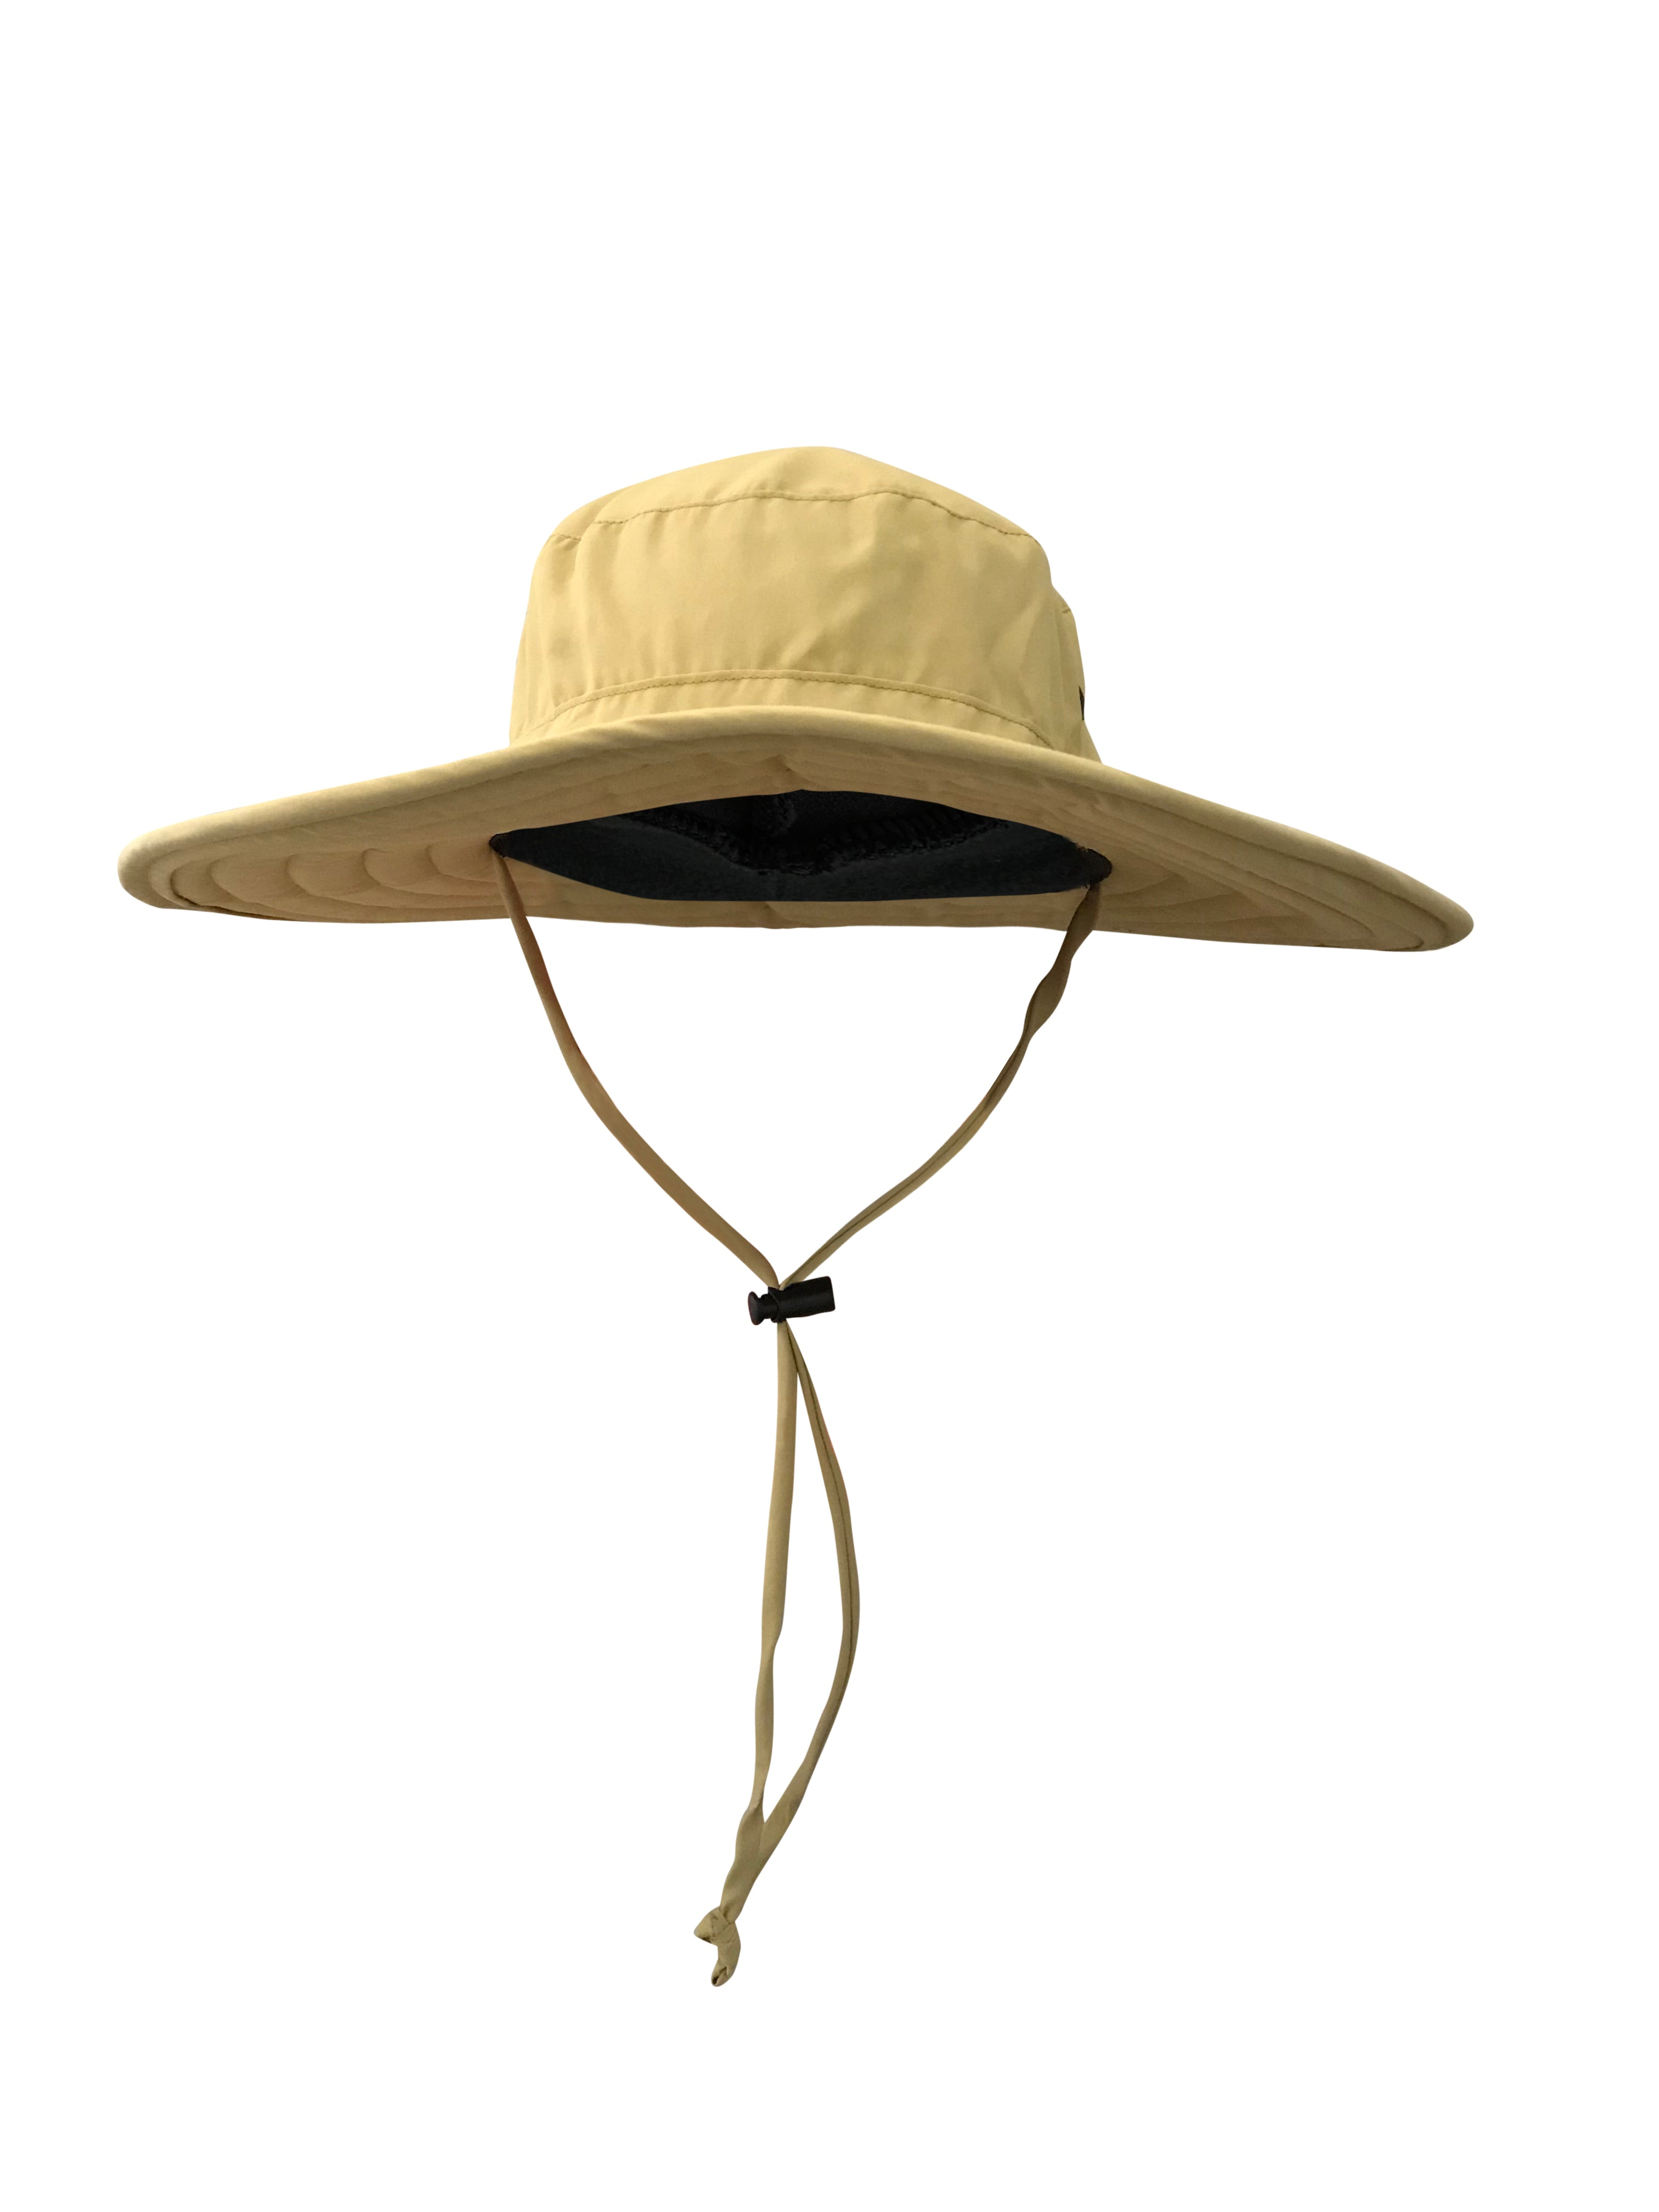 ZeuKnLu Hemp Sun Hat Without Fleece Liner Front View